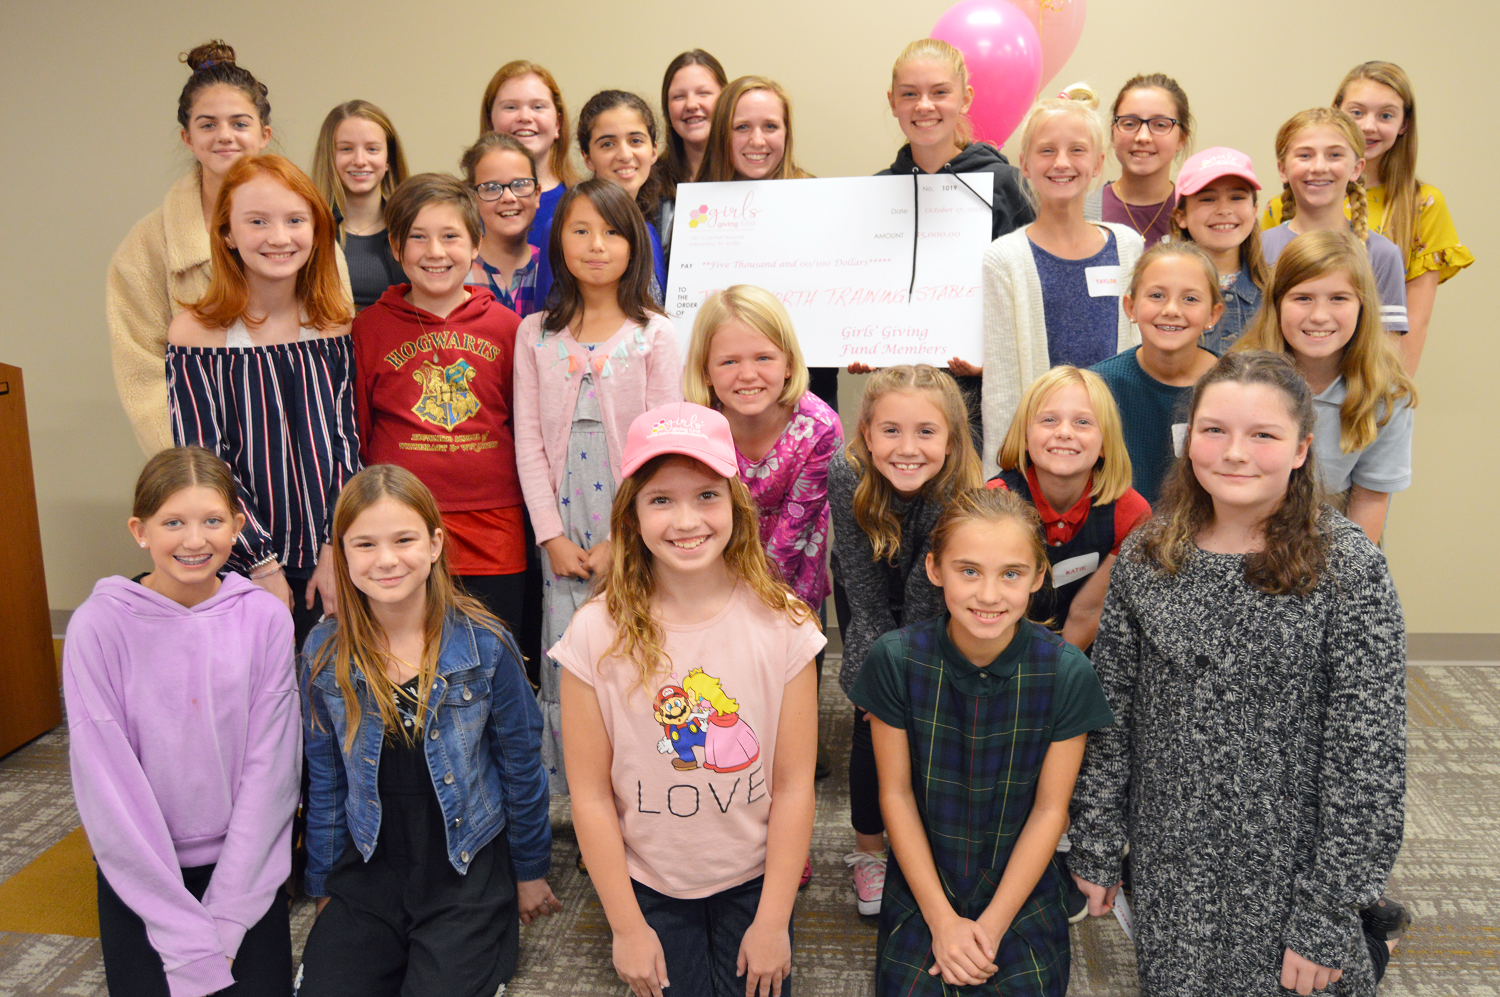 Members of the Girls' Giving Fund awarded their 2019 grant to True North Training Stables, represented by two of their interns.